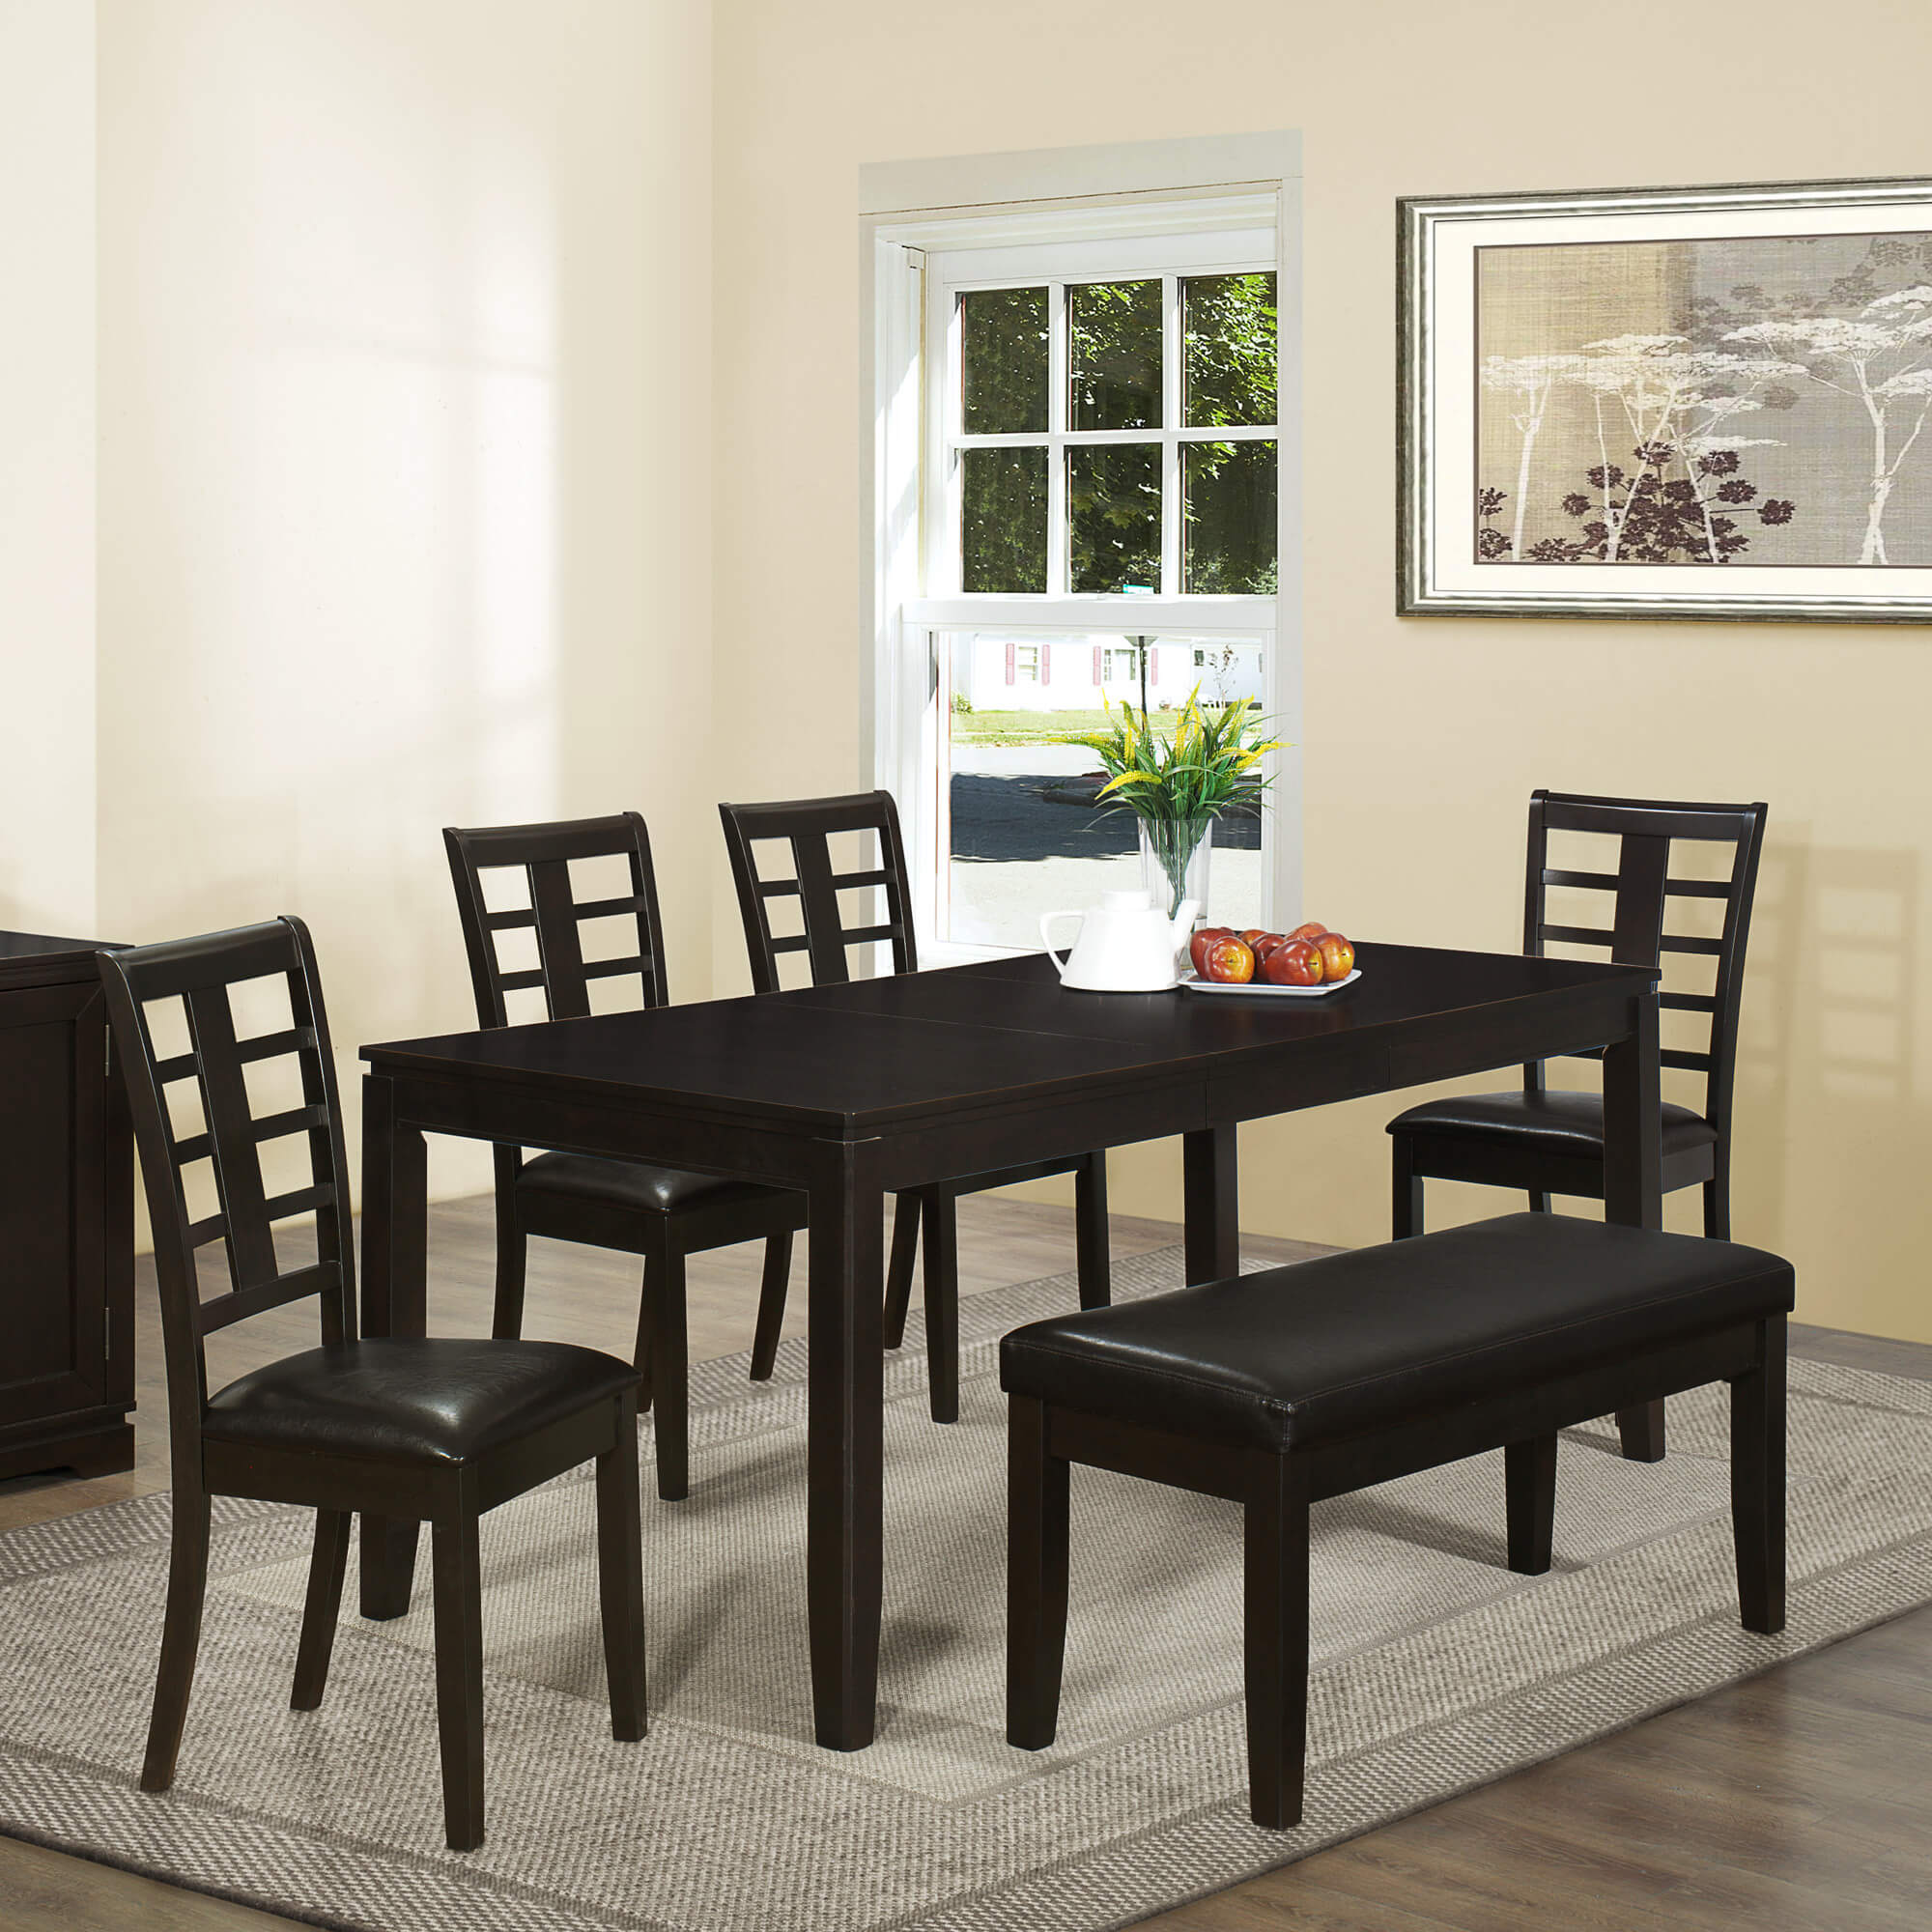 Contemporary Asian Inspired Dining Set With Bench Is A Good Size Being Able  To Accommodate Nice Ideas